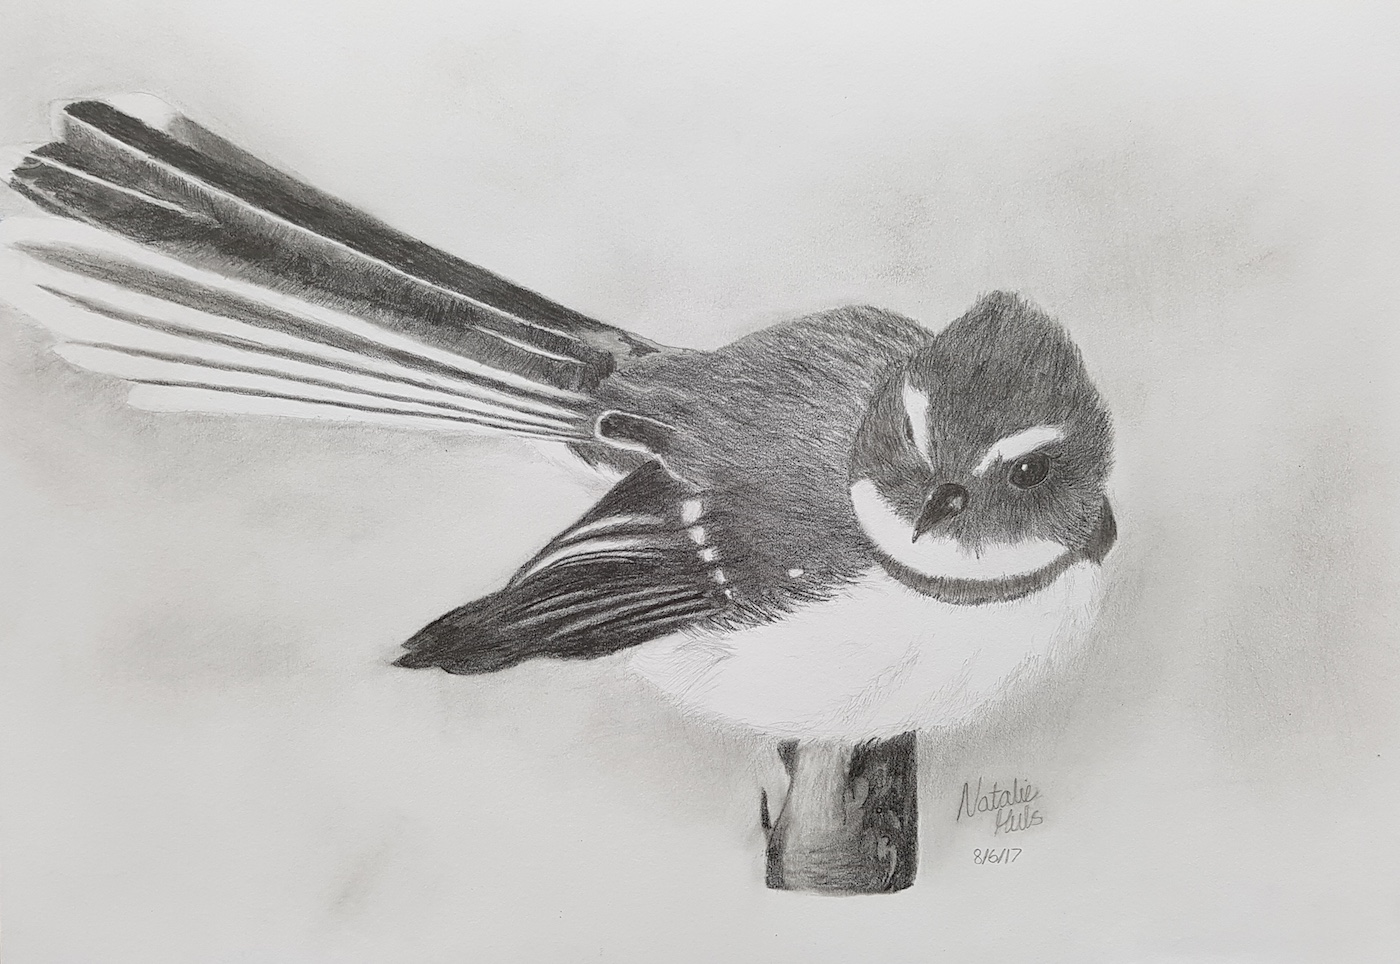 Fantail by Natalie aged 13